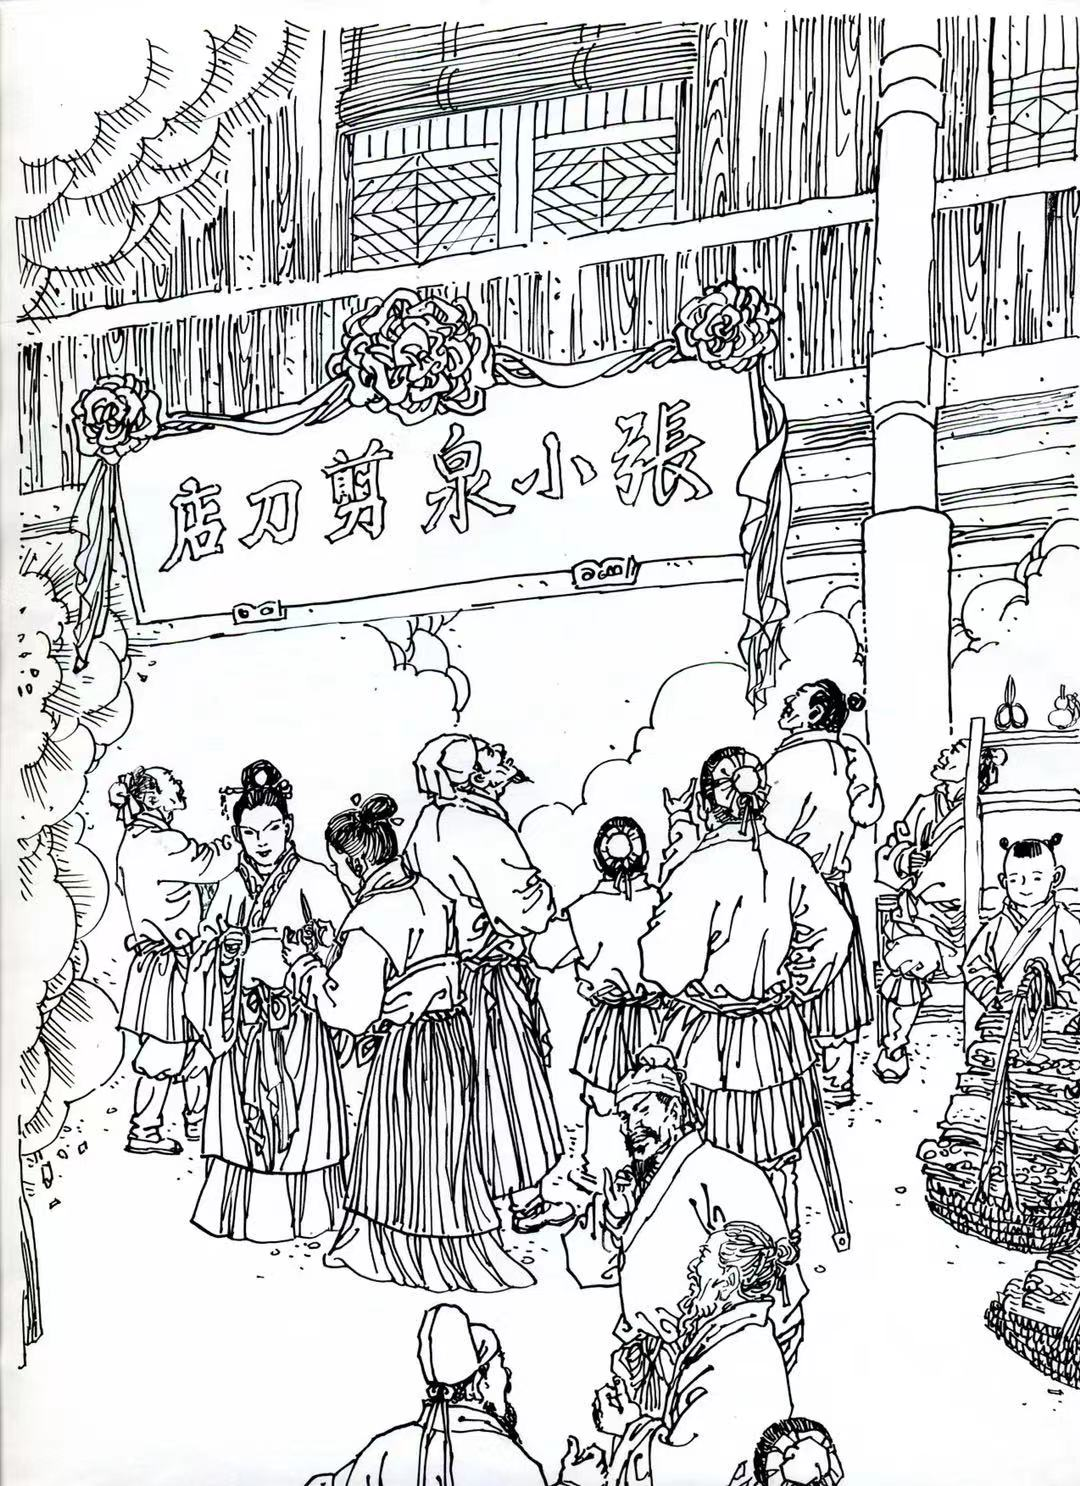 """around 1610, """"Zhang Dalong"""" moved to Dajing Lane in Hangzhou. In order to avoid counterfeiting, Zhang Xiaoquan resolutely changed """"Zhang Dalong"""" to his own name """"Zhang Xiaoquan"""" on the day when he took over the business from his father in 1628."""